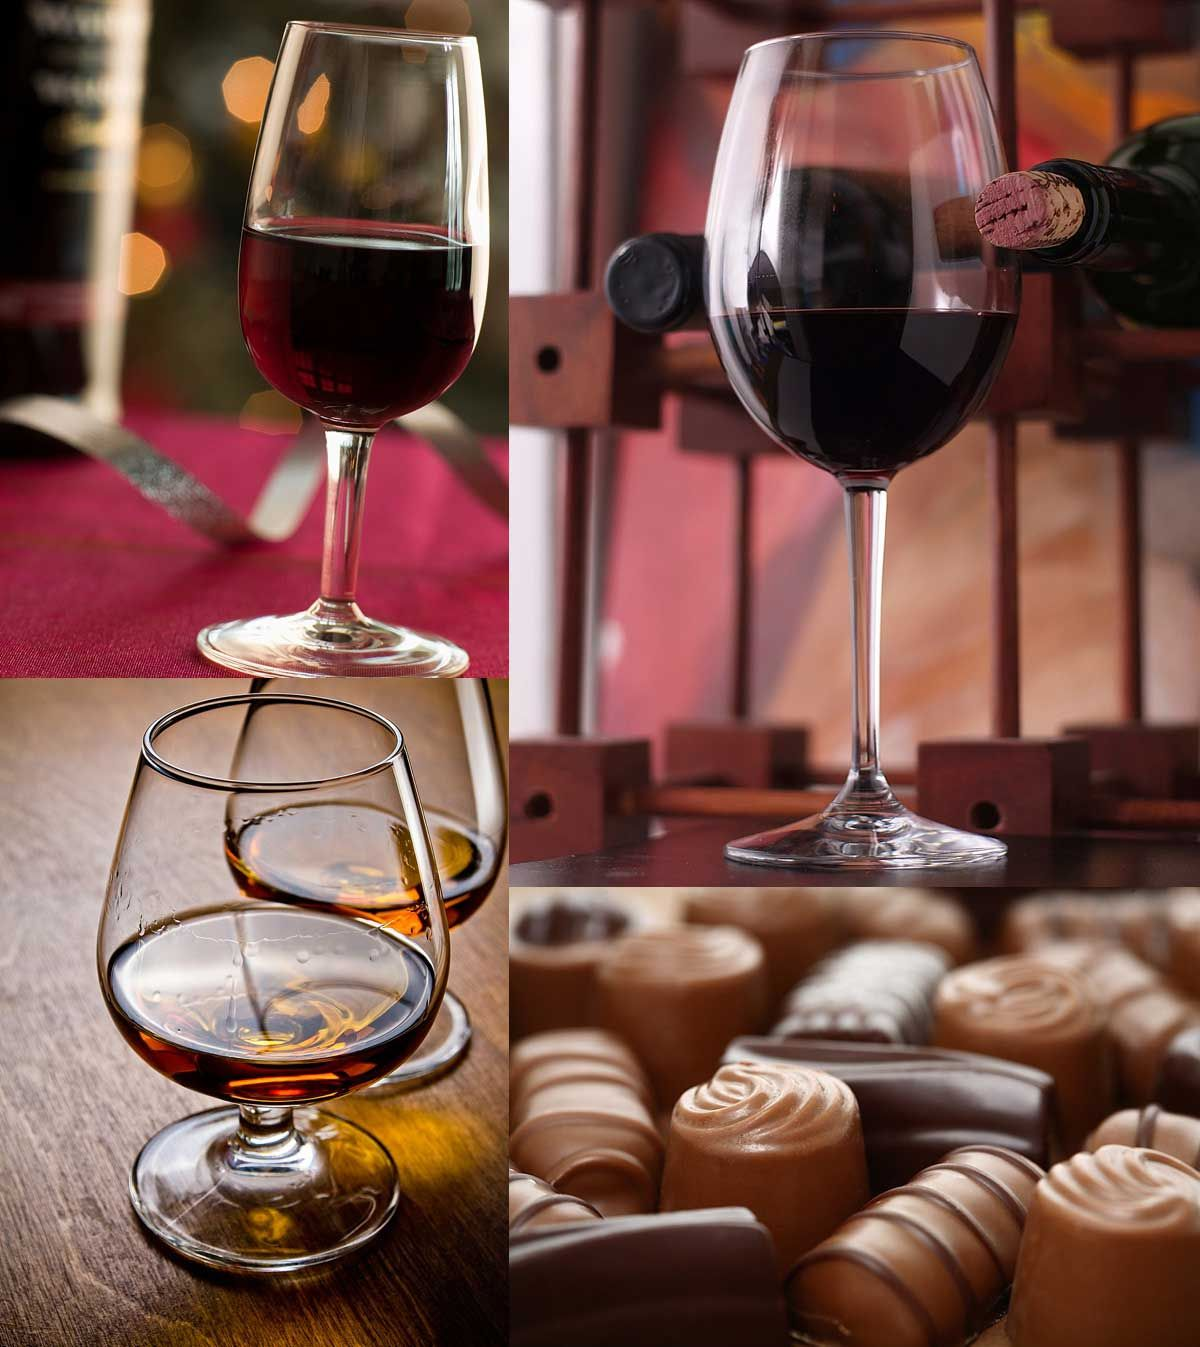 Chocolate And Wine Pairings Wine And Chocolate Can Be A Divinely Delicious Pairing Provided You Follow A Few Guidelines For Choos Wine Pairing Wine Wine Guide